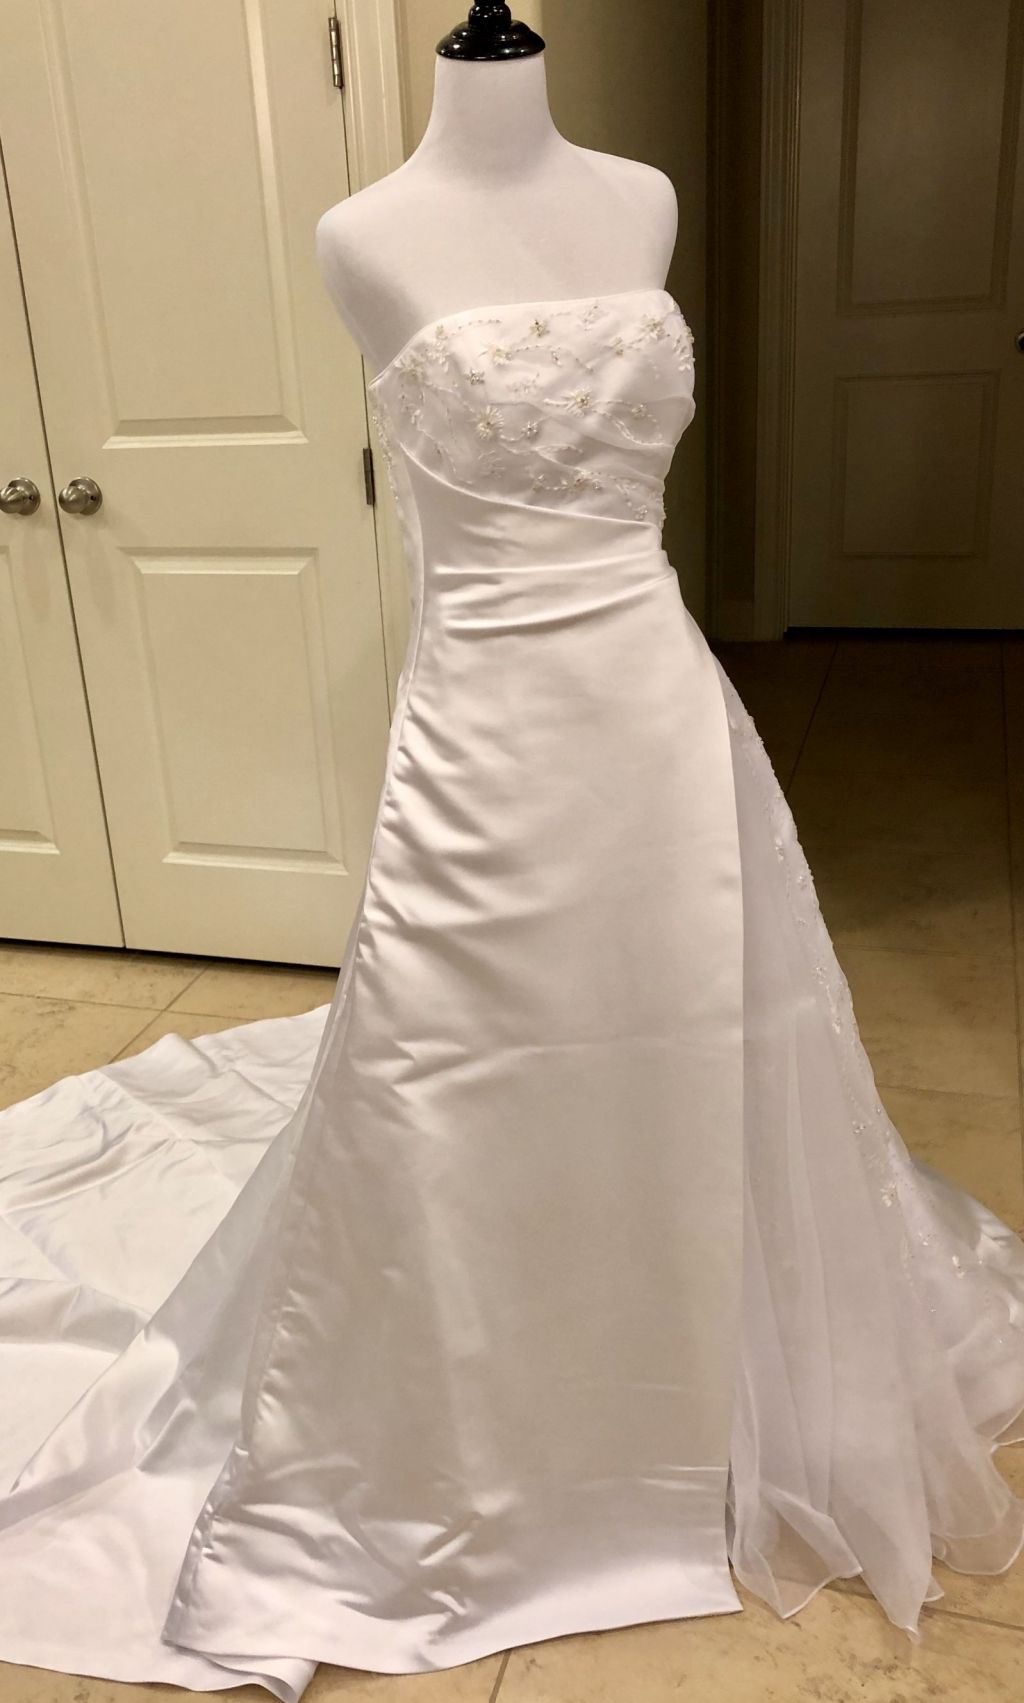 Maggie Sottero $120 Size: 12 | Used Wedding Dresses